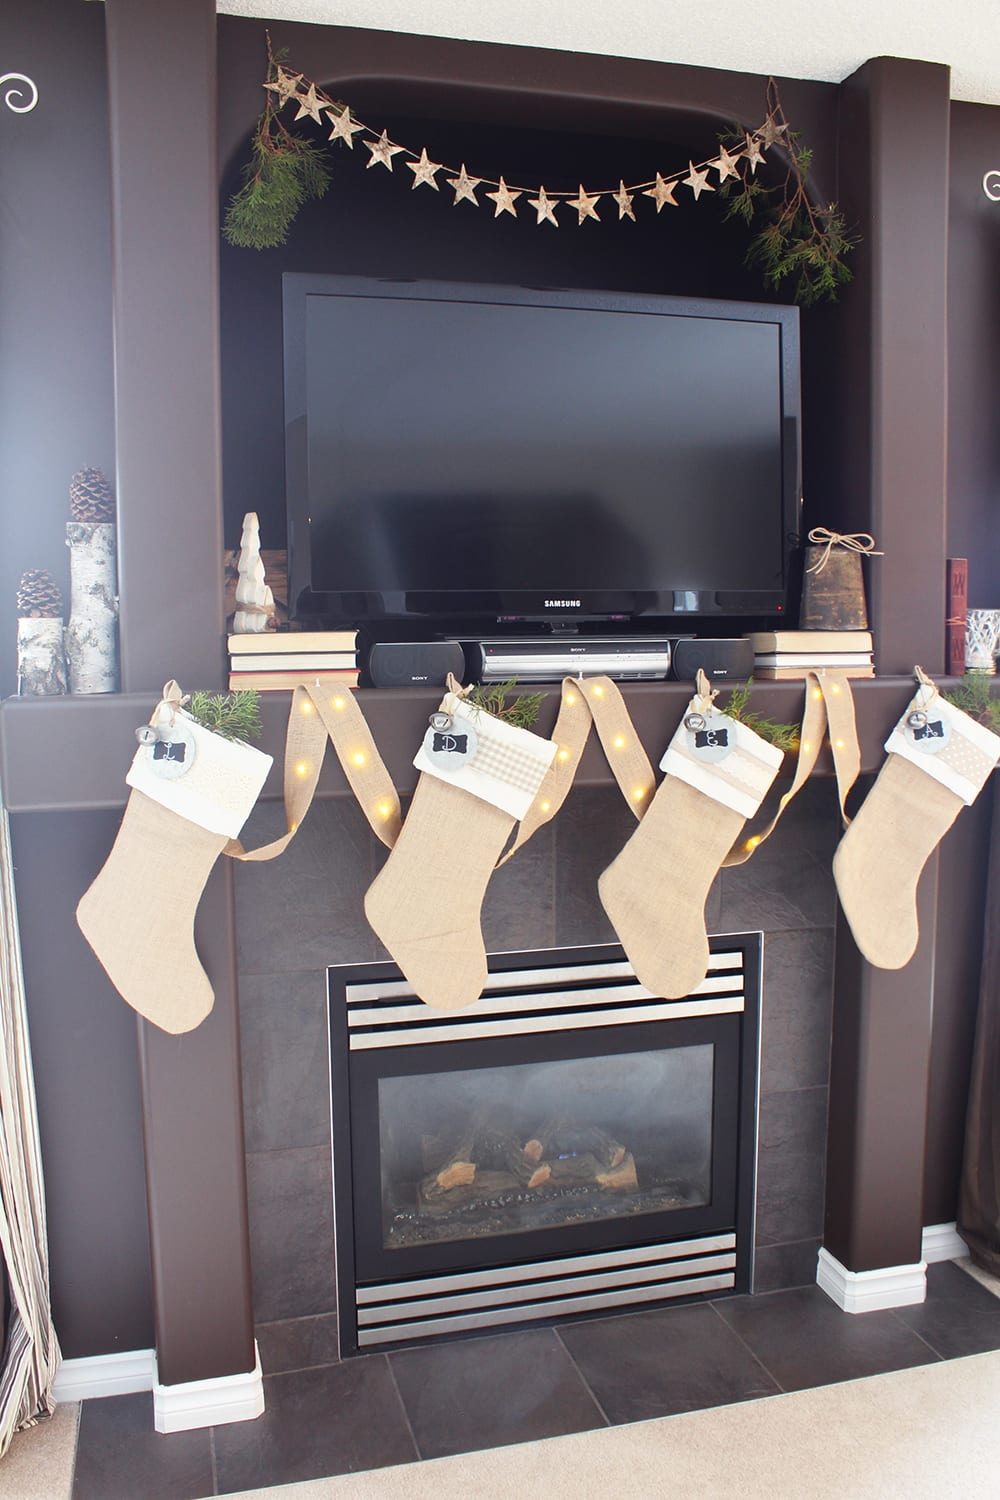 Nature inspired holiday decor featuring burlap stockings, birch logs, a star garland and fresh greenery.